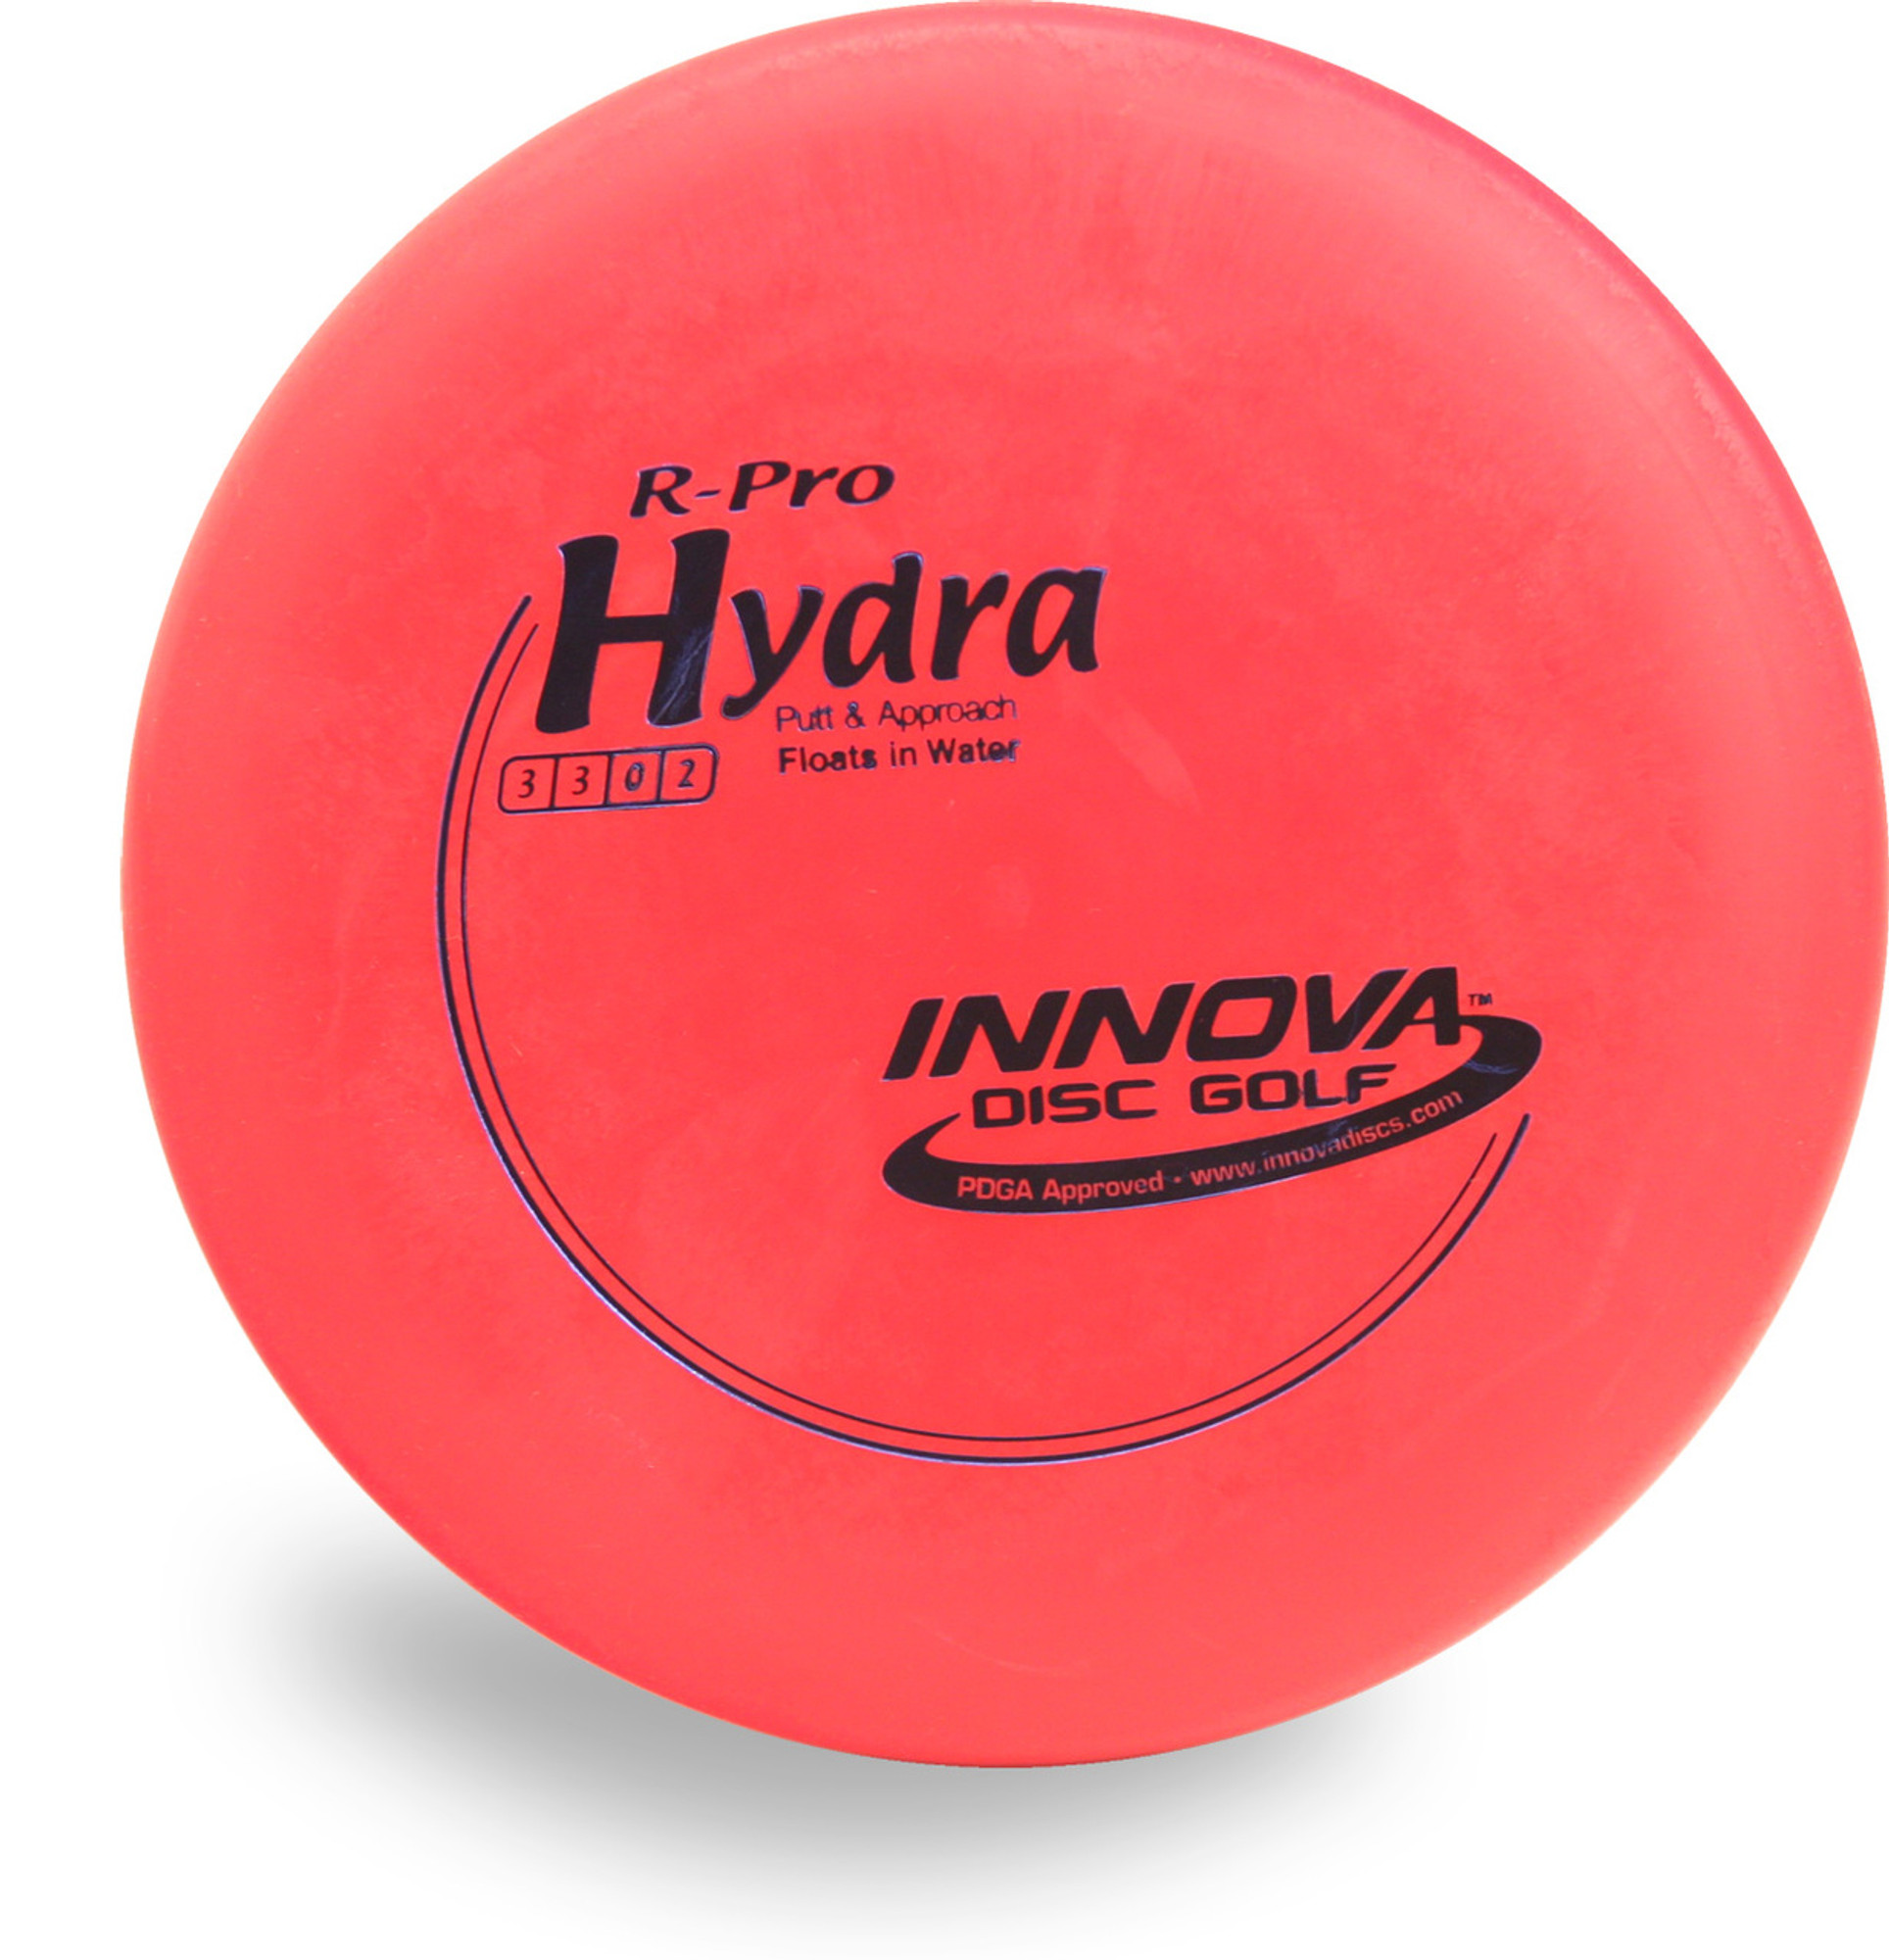 Innova Floating Disc Golf Gift Set 3 Discs Pack Floats On Water Mini Marker Disc Sticker The Wright Life Action Sports Store